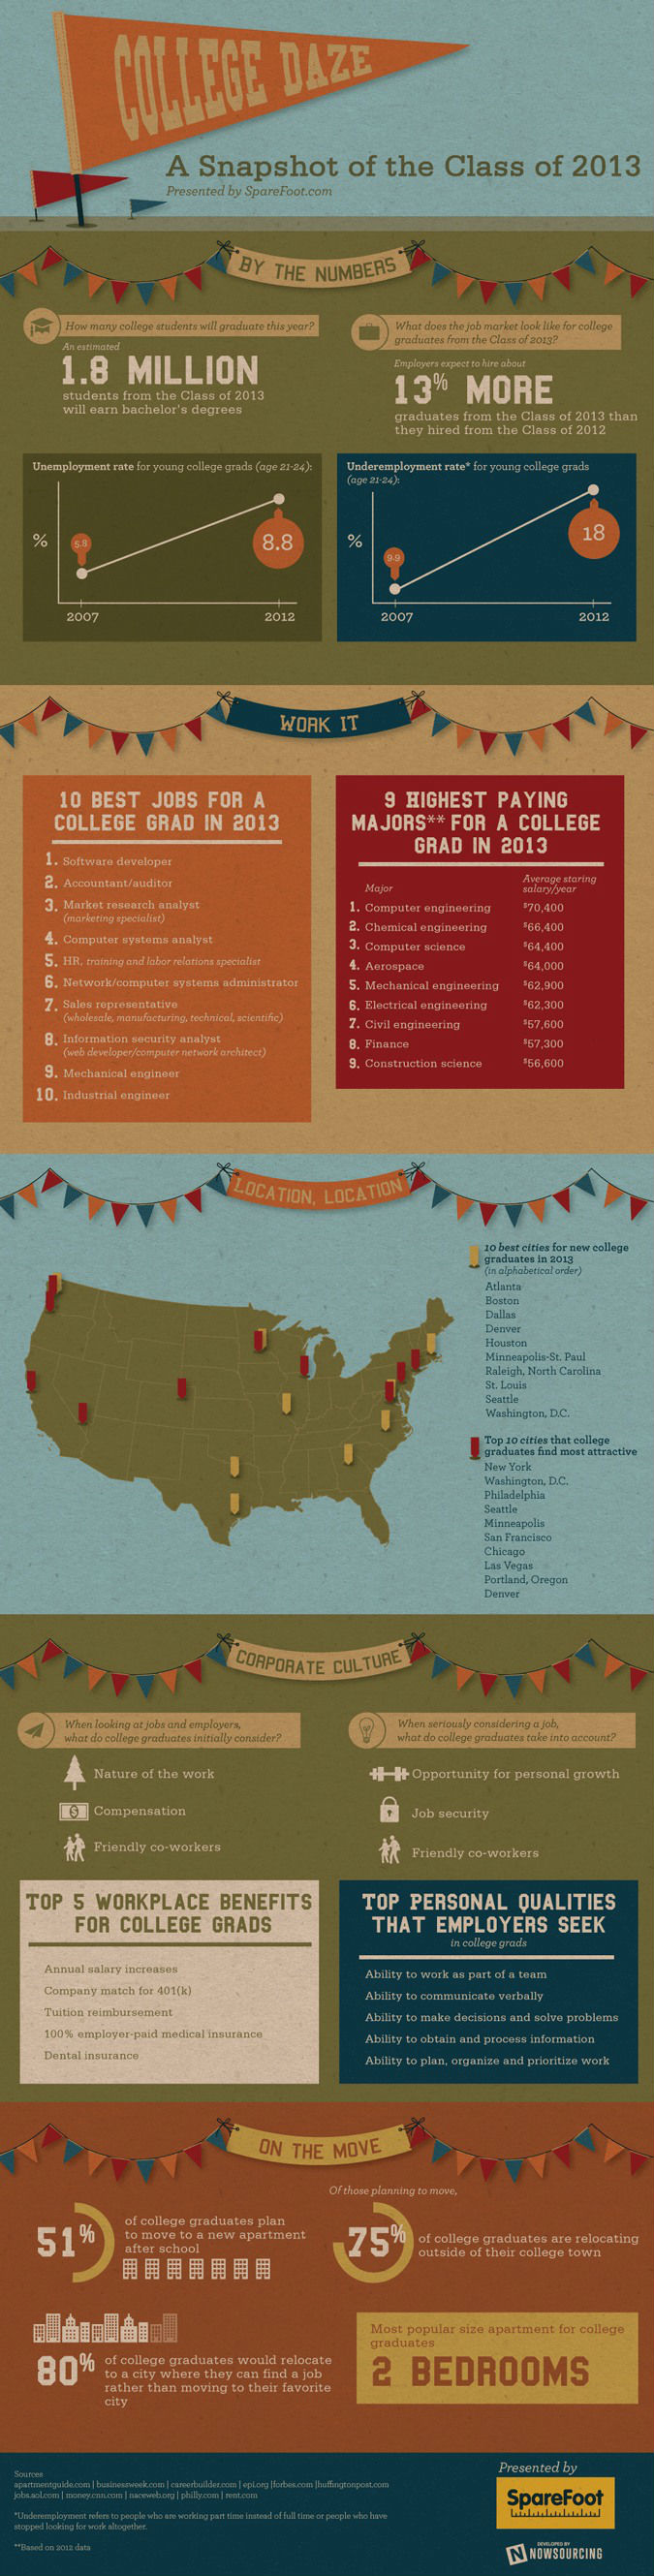 A Snapshot of the College Class of 2013 Infographic